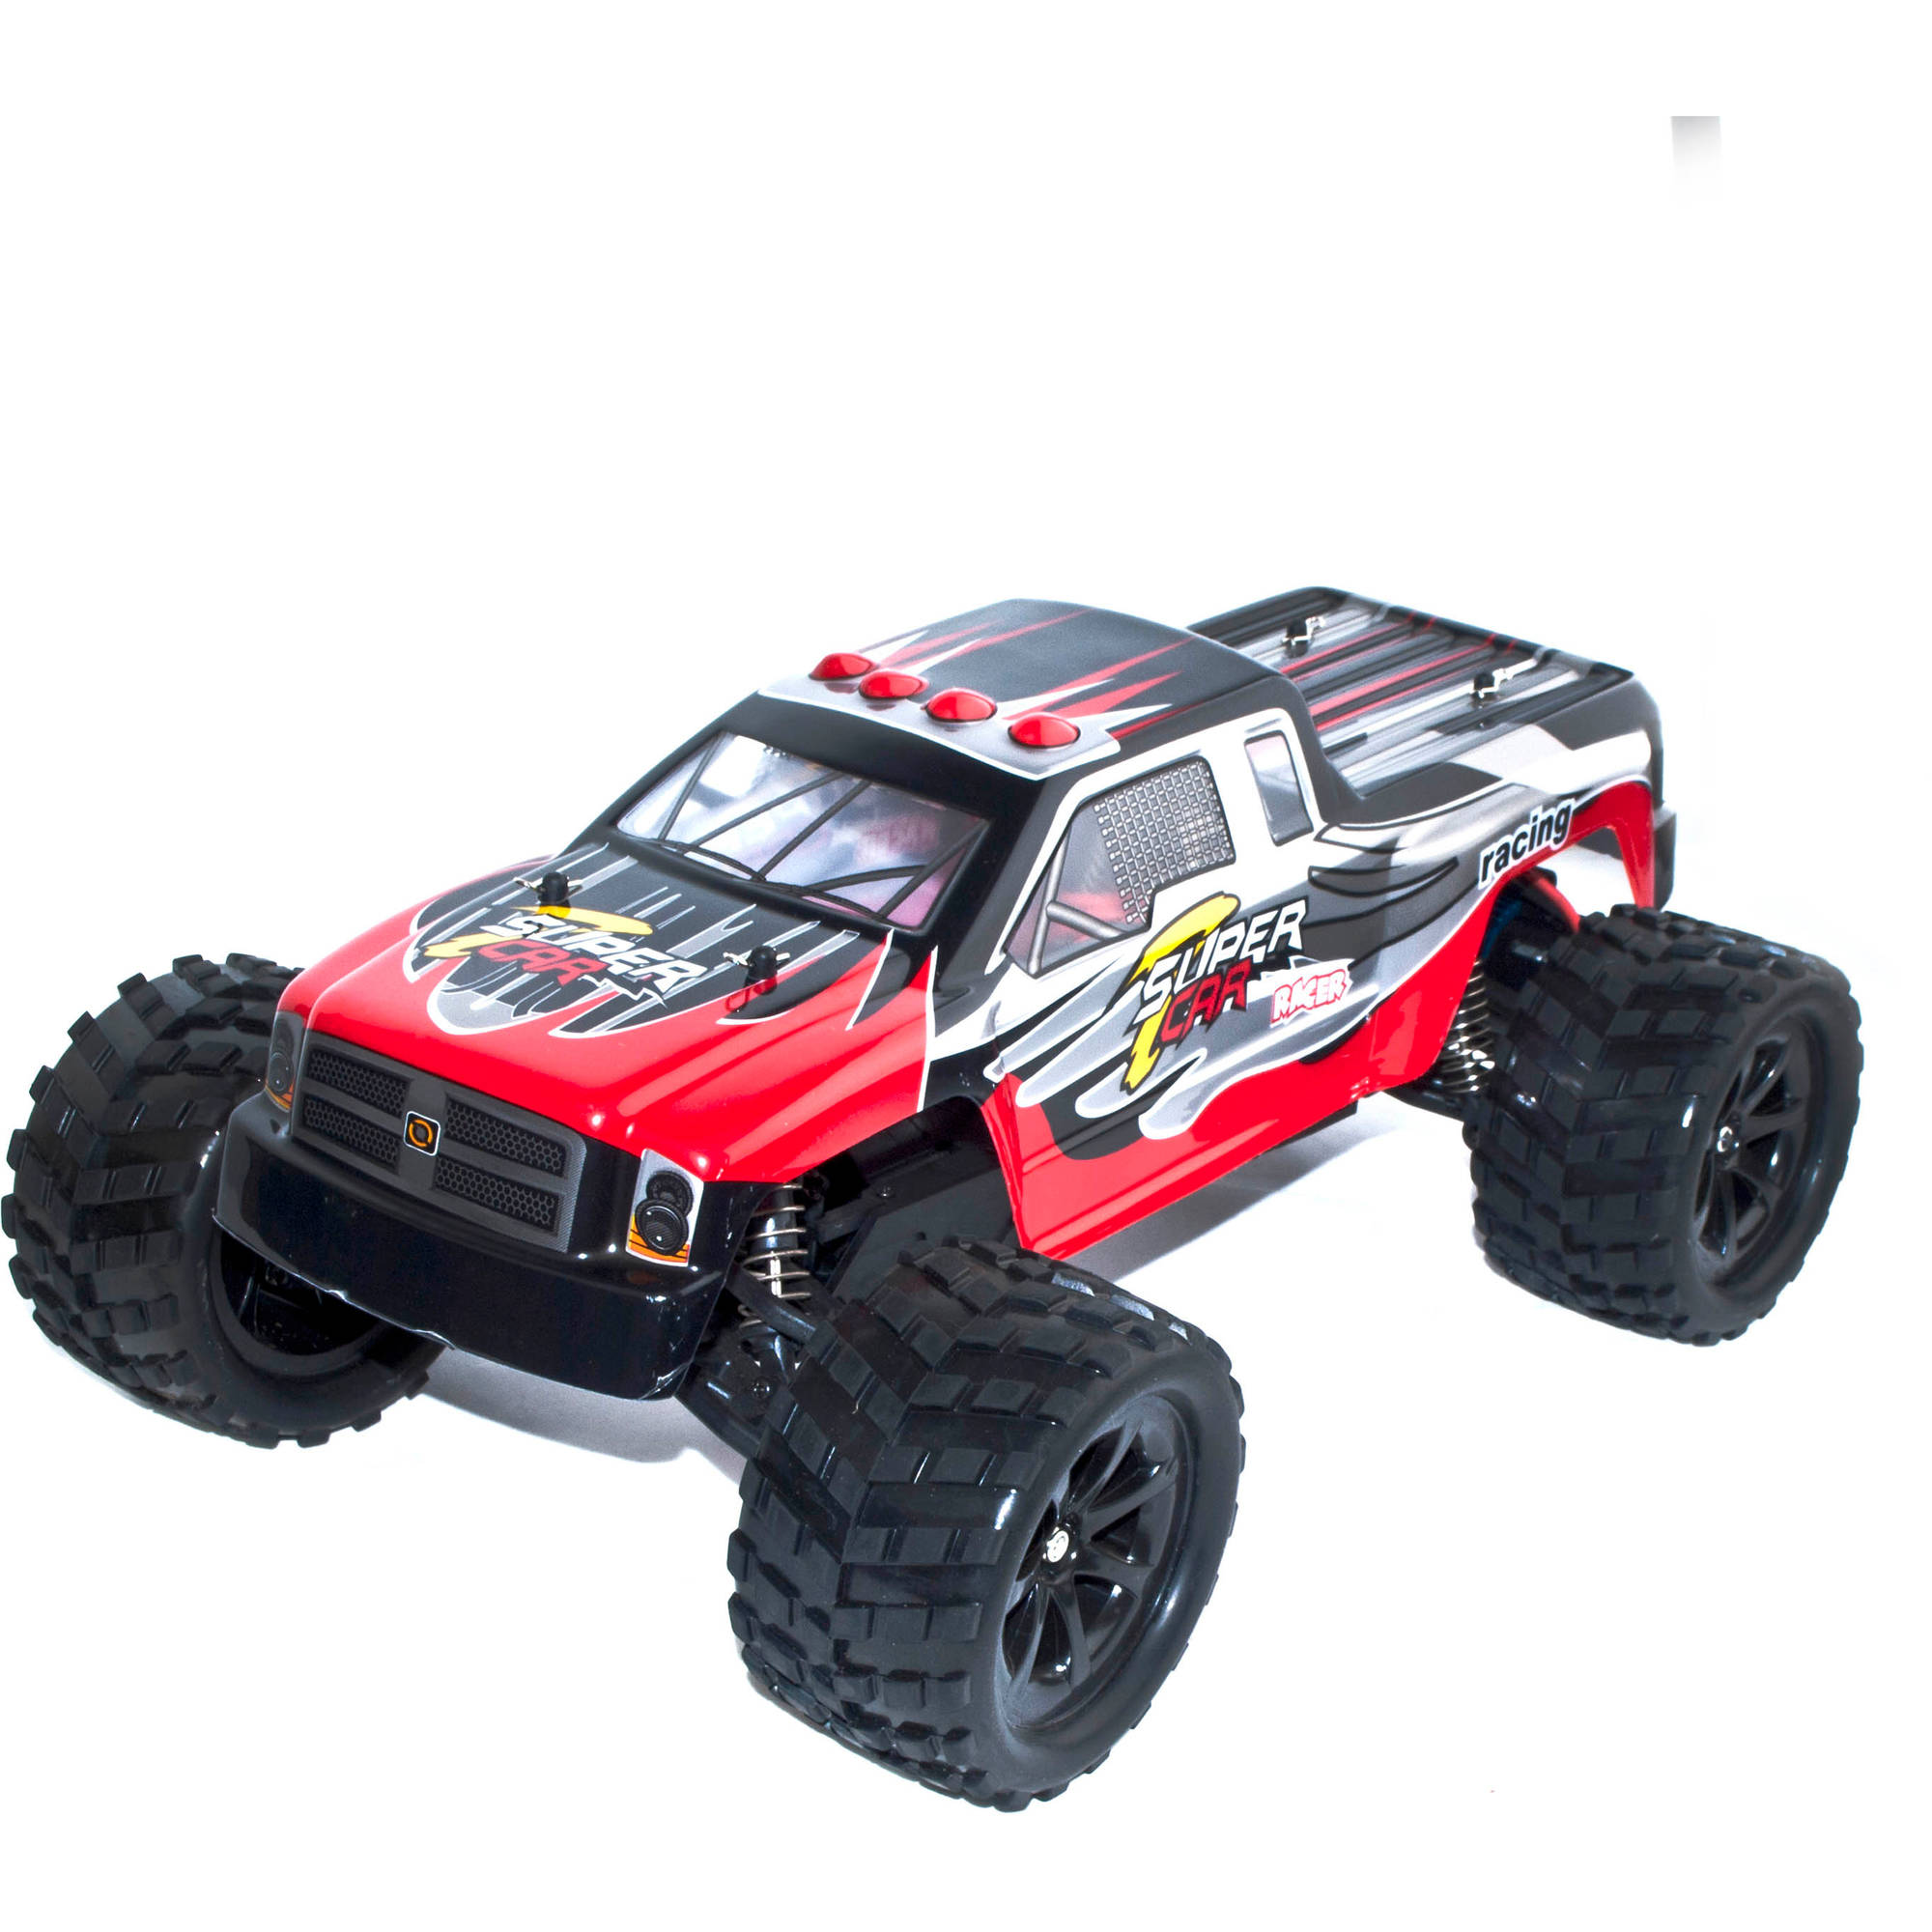 2.4G 1:12 Scale RCC66969RED Brushed Electric Powered Monster Truck